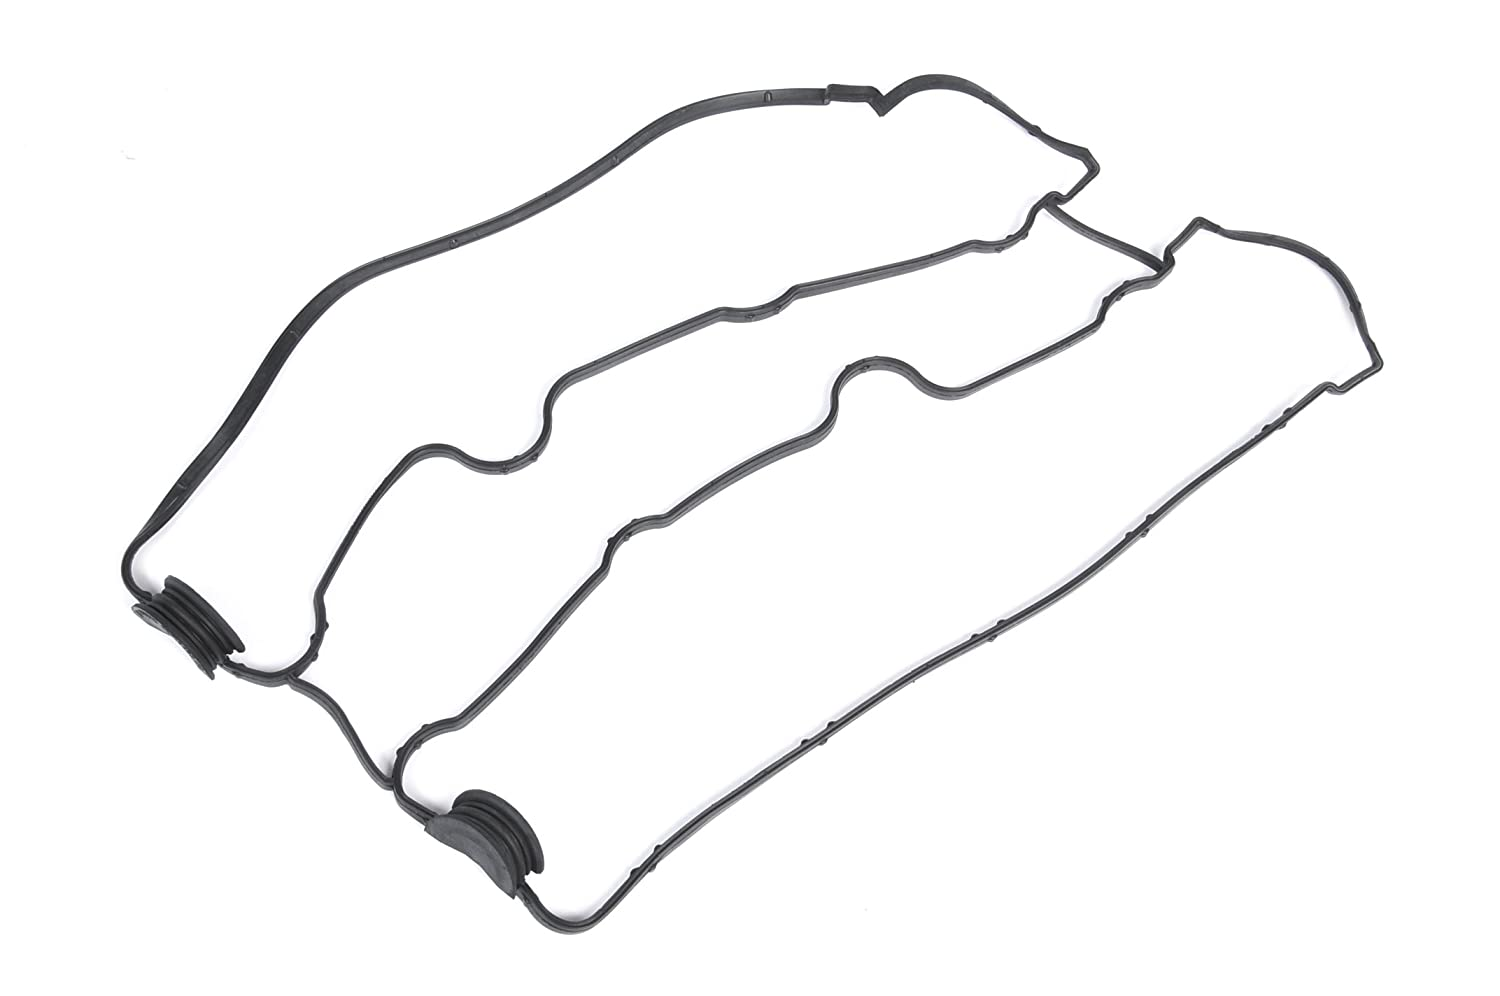 Amazon.com: ACDelco 55351456 GM Original Equipment Valve Cover Gasket:  Automotive